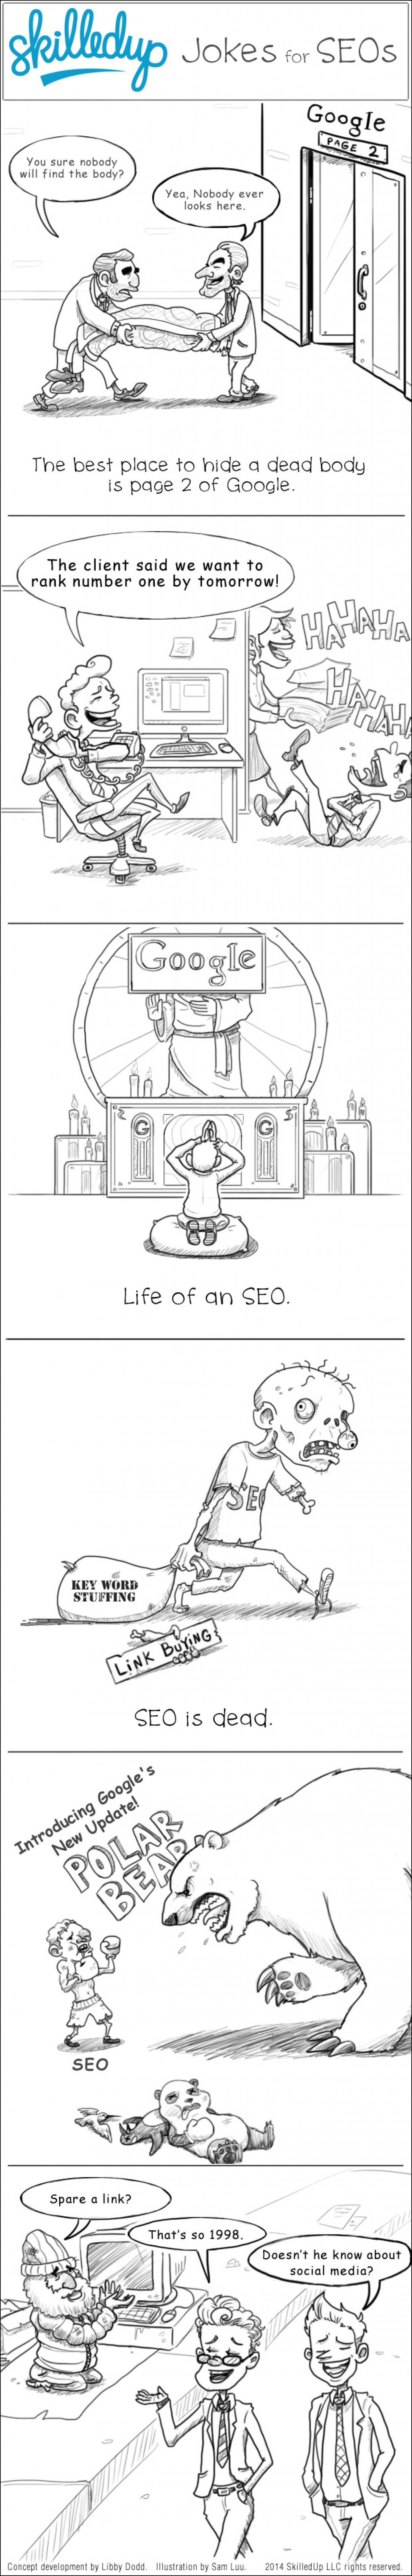 6 Search Engine Optimization Jokes That Will Make Any SEO Laugh Infographic